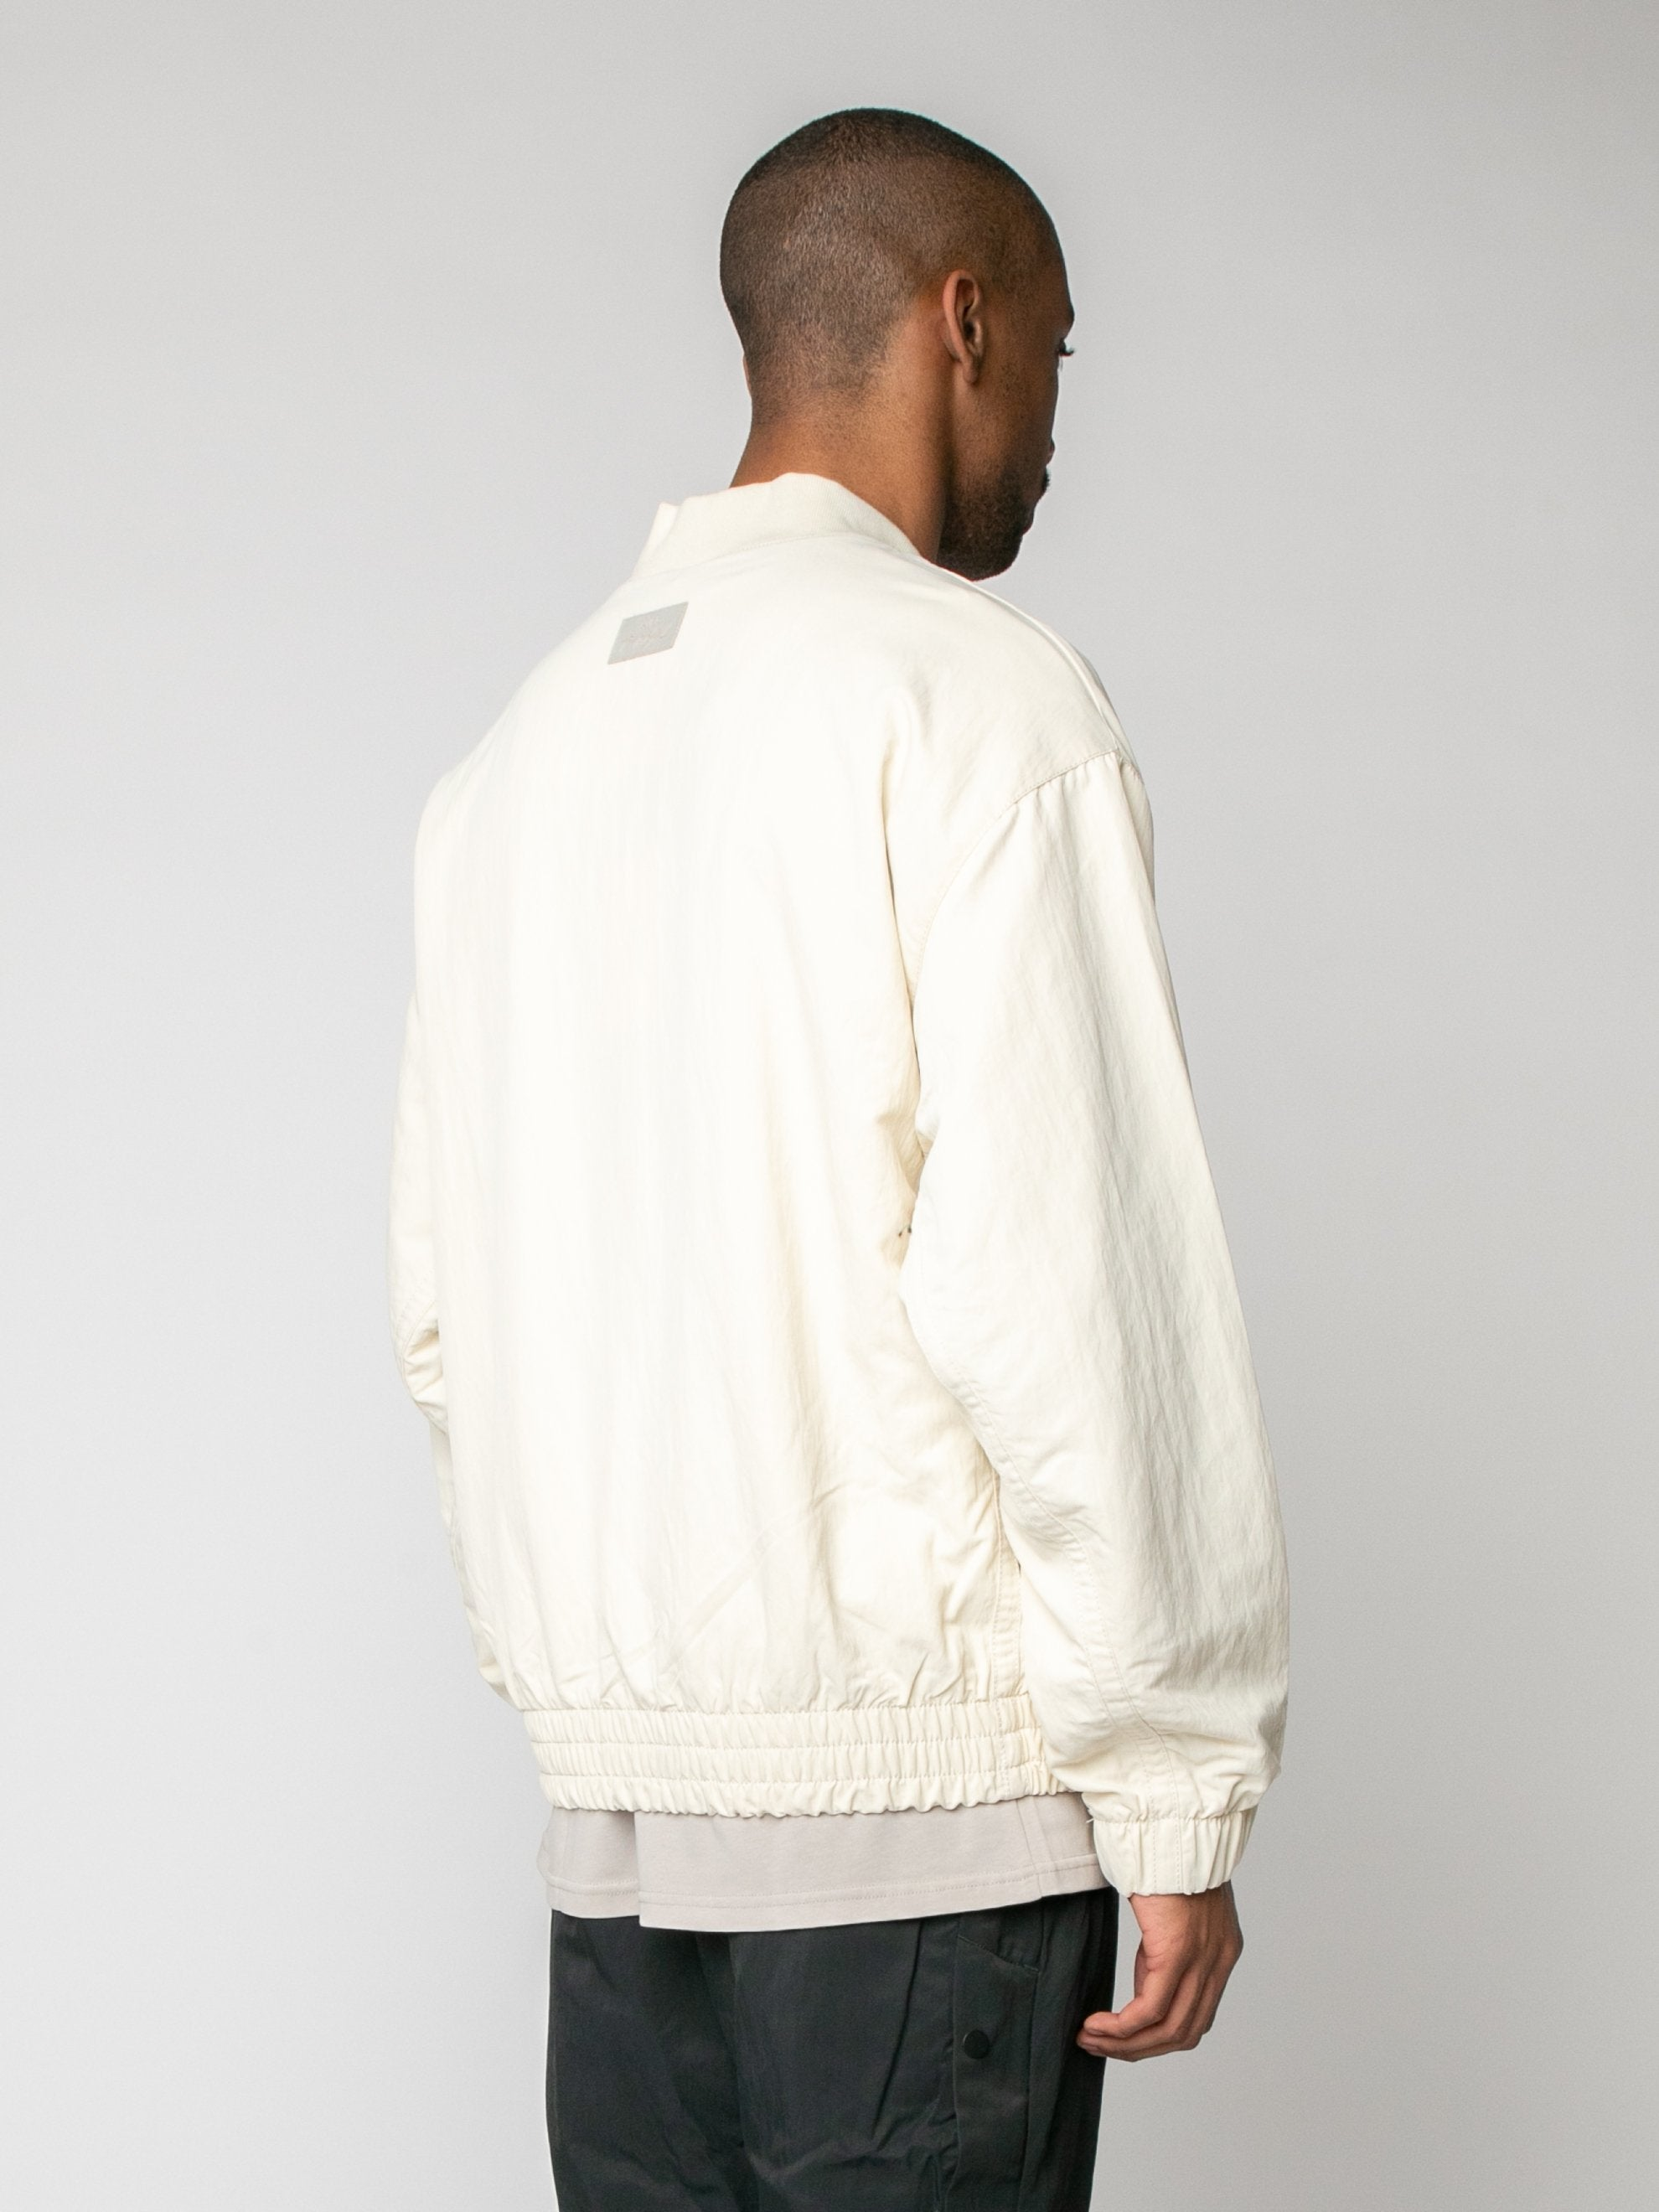 Light Cream Nike x Fear of God Basketball Jacket 5